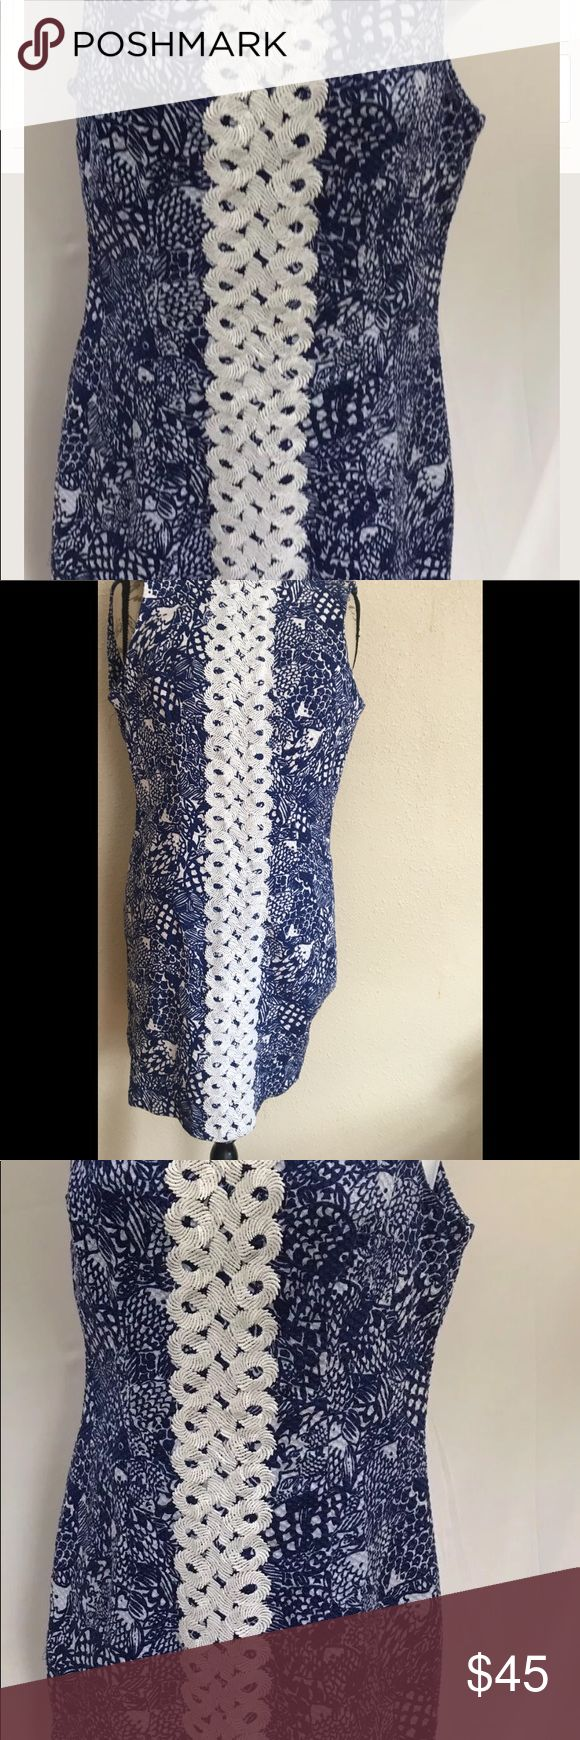 Lilly Pulitzer Blue and white shift dress Lilly Pulitzer shift dress size 6 Upstream Blue and White Fish Print Shell 98% cotton 2 % Spandex Solid white lining 100% cotton Vertical white spiral accent Gold pineapple metal zipper Measurements: Chest : 34 inch circumference Shoulder to hem length: 34 inches Lilly Pulitzer Dresses Midi